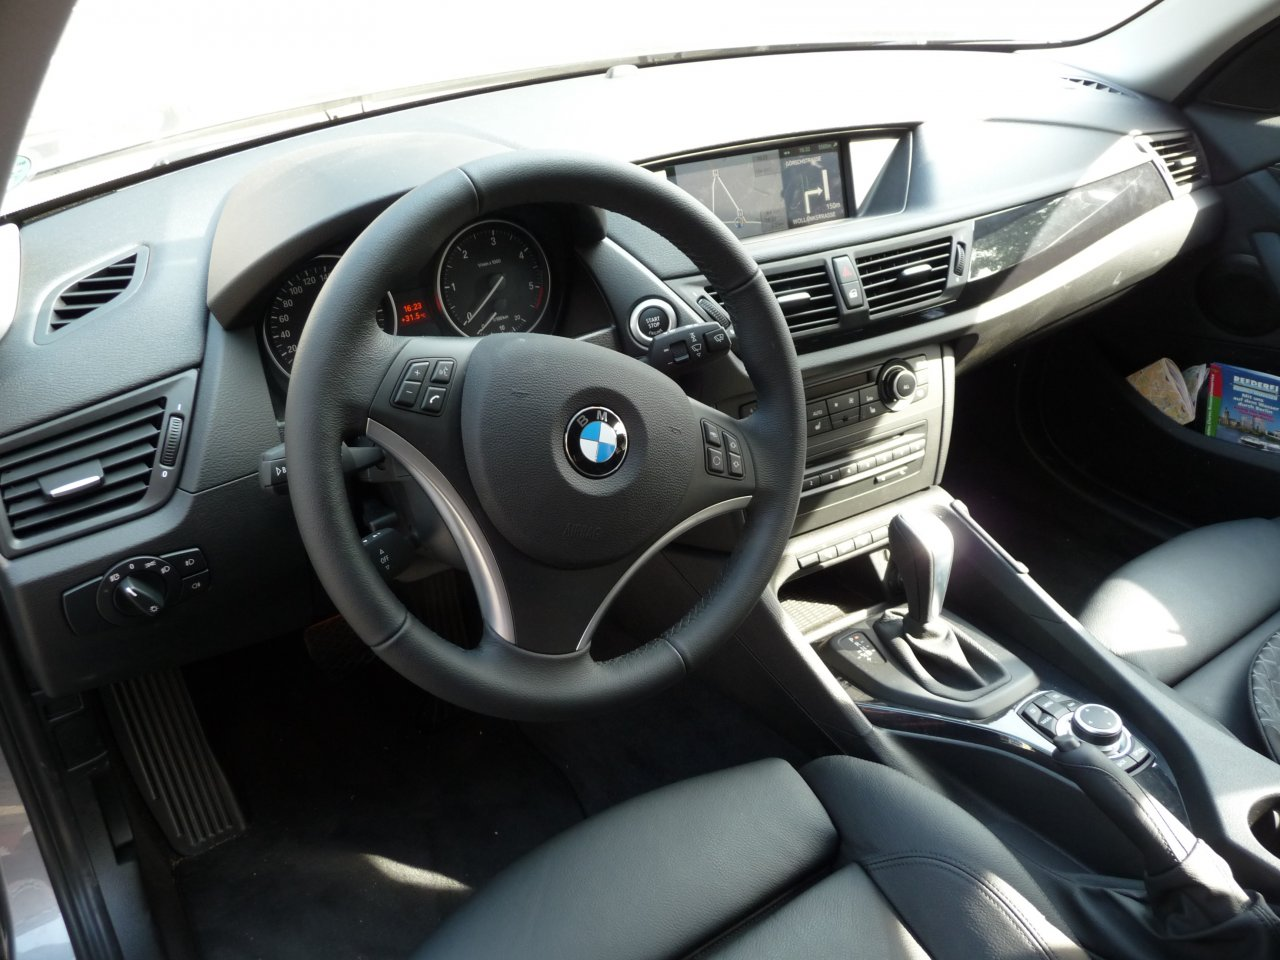 Essai bmw x1 x drive tonton greg for Interieur x1